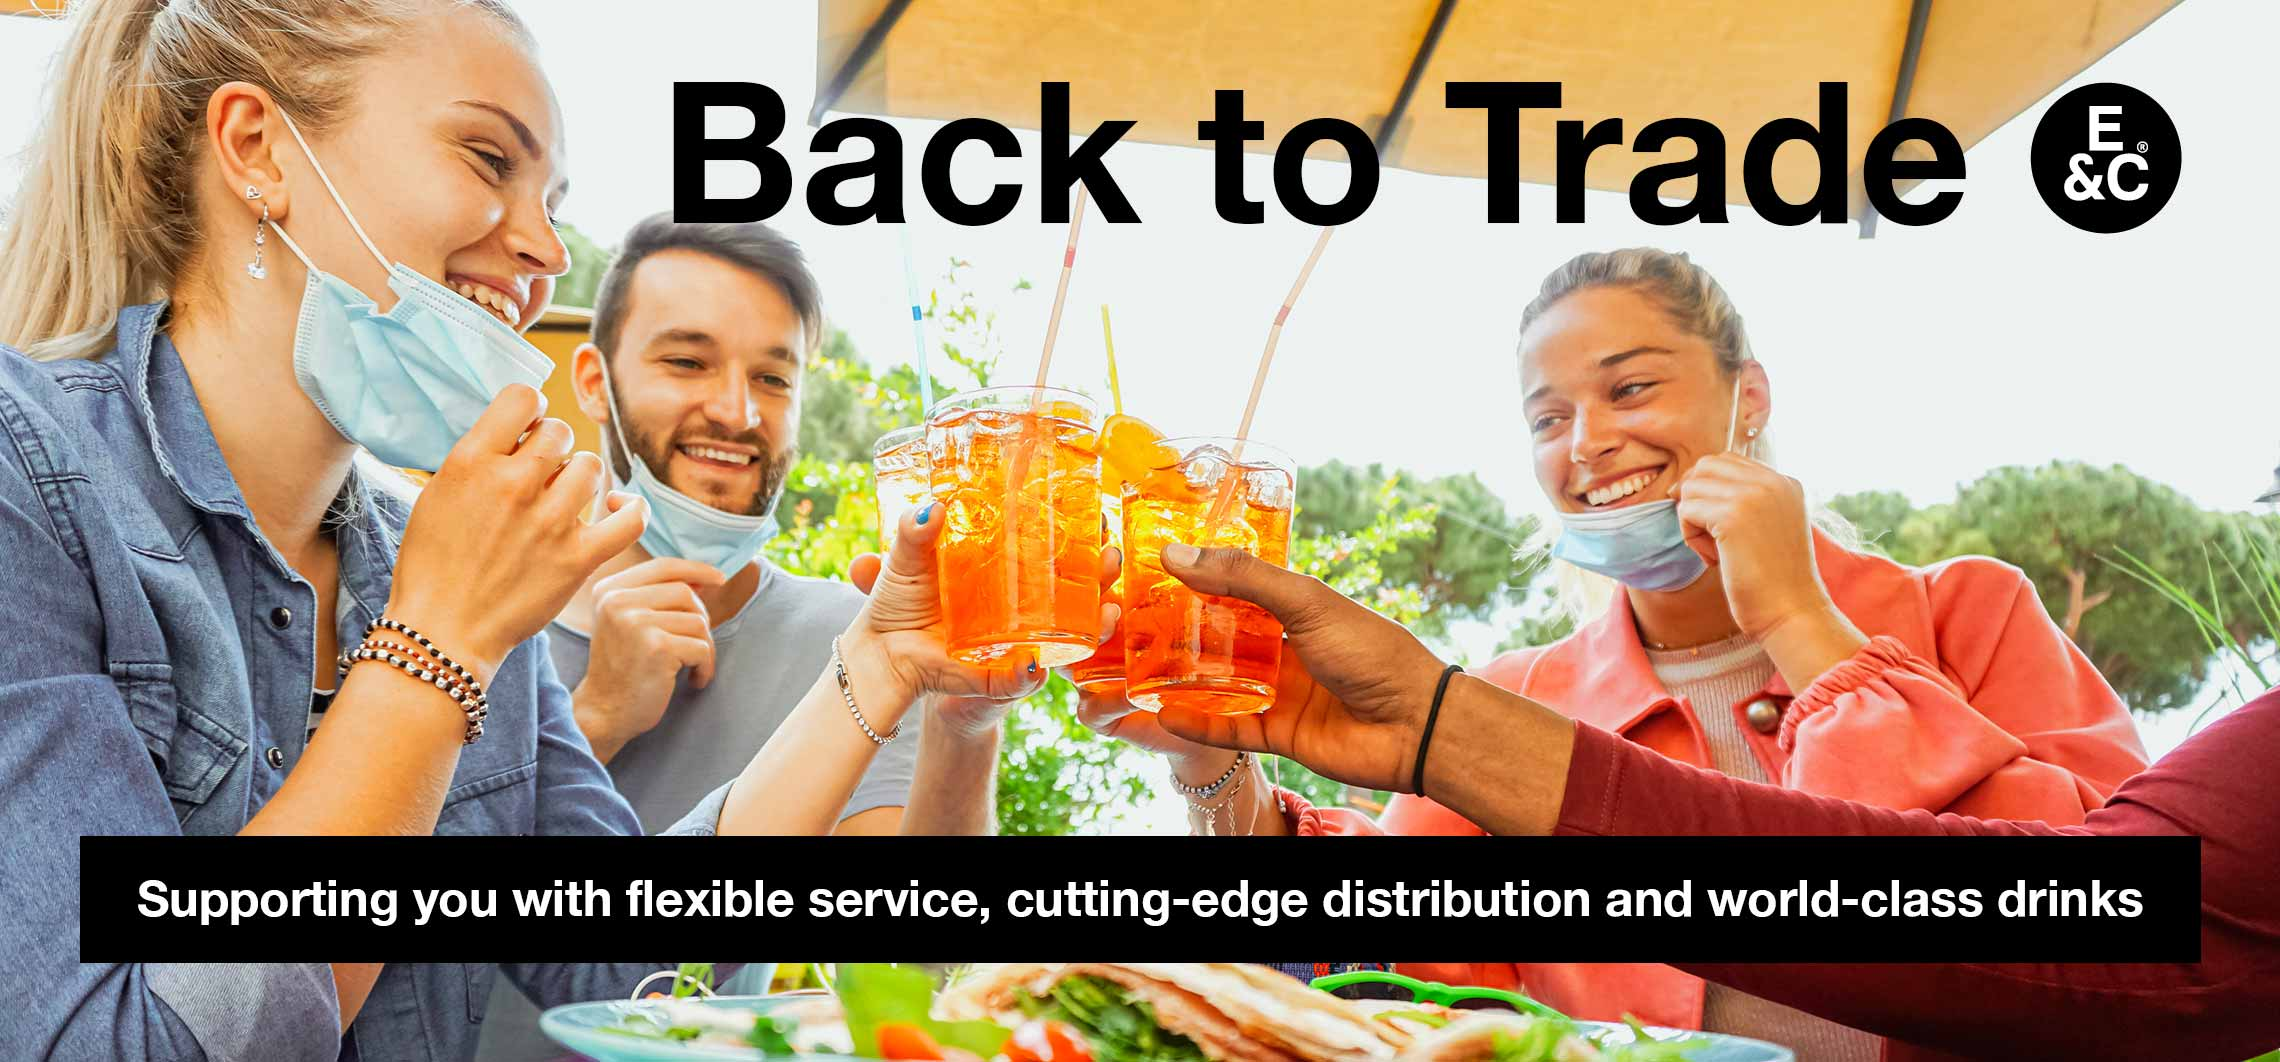 Back to Trade - supporting you with flexible service, cutting-edge distribution and world-class drinks